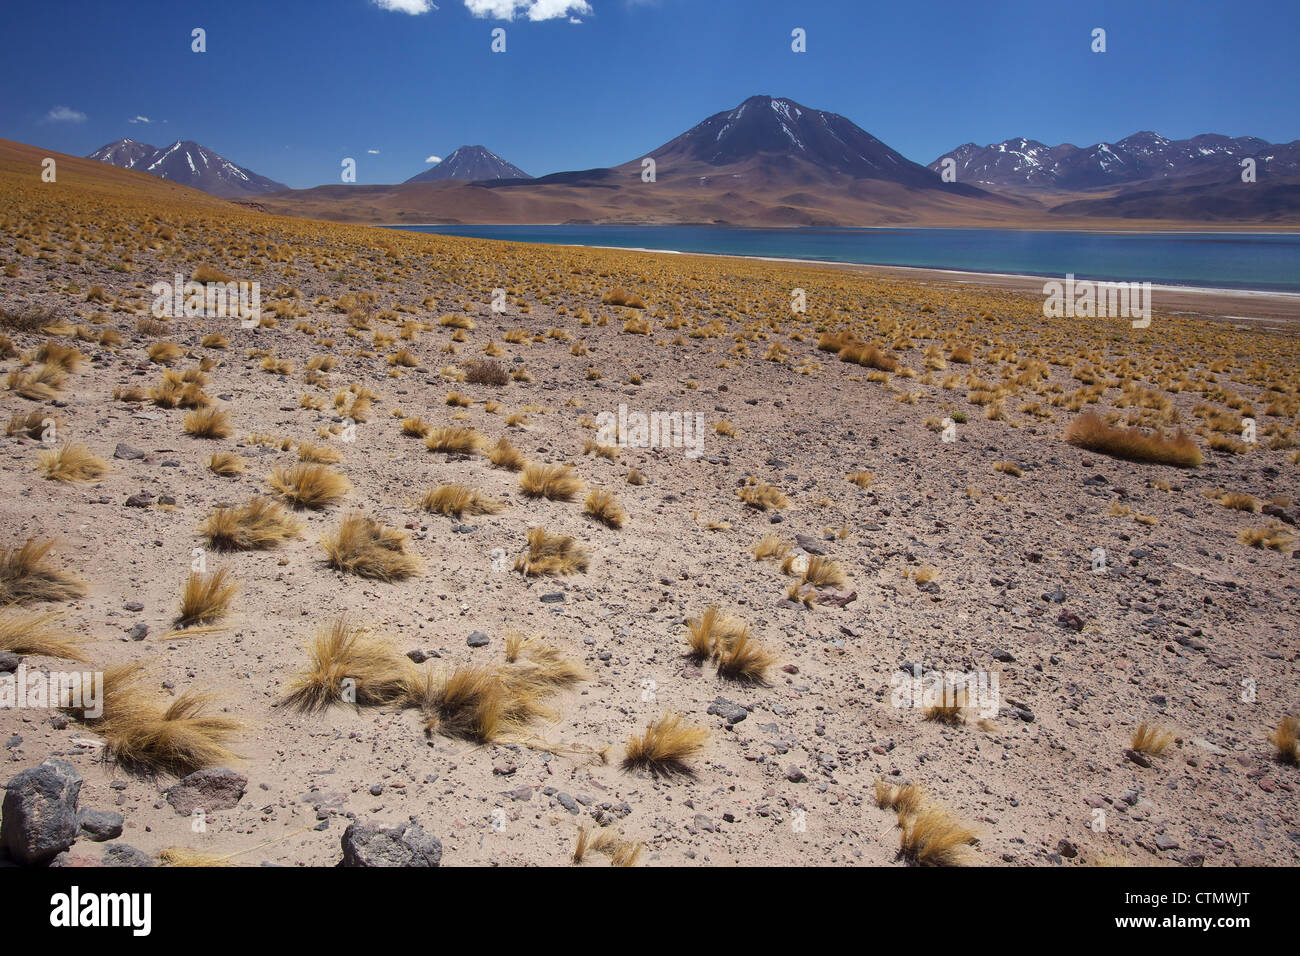 View of the Laguna Miscanti at an altitude of 4300m, Los Flamencos National Reserve, Chile, South America - Stock Image